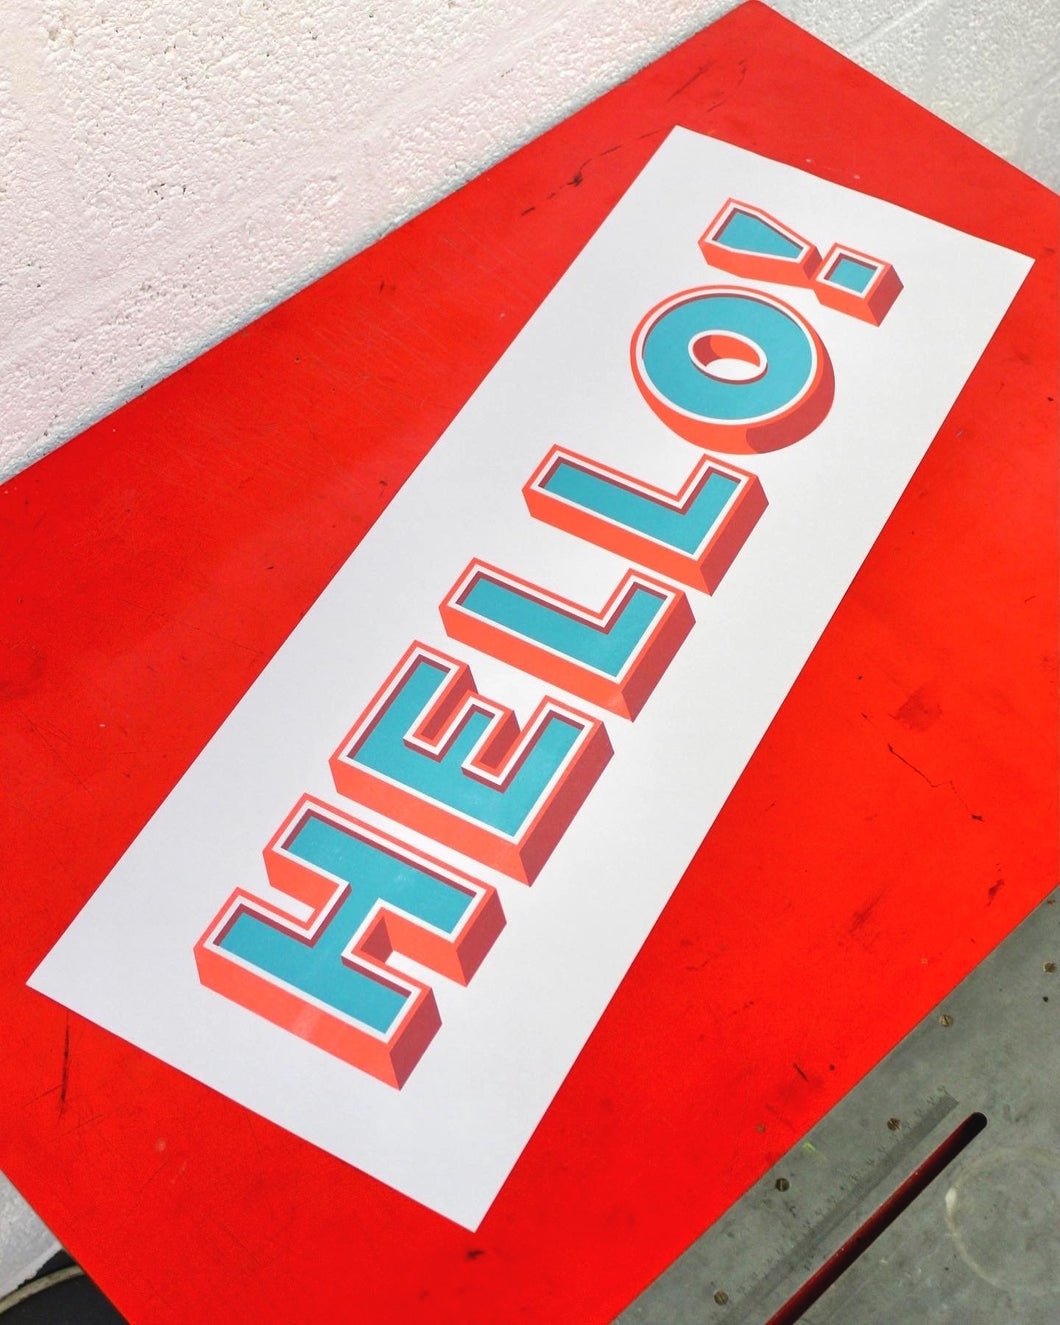 HELLO! - Chromatic Letterpress Print